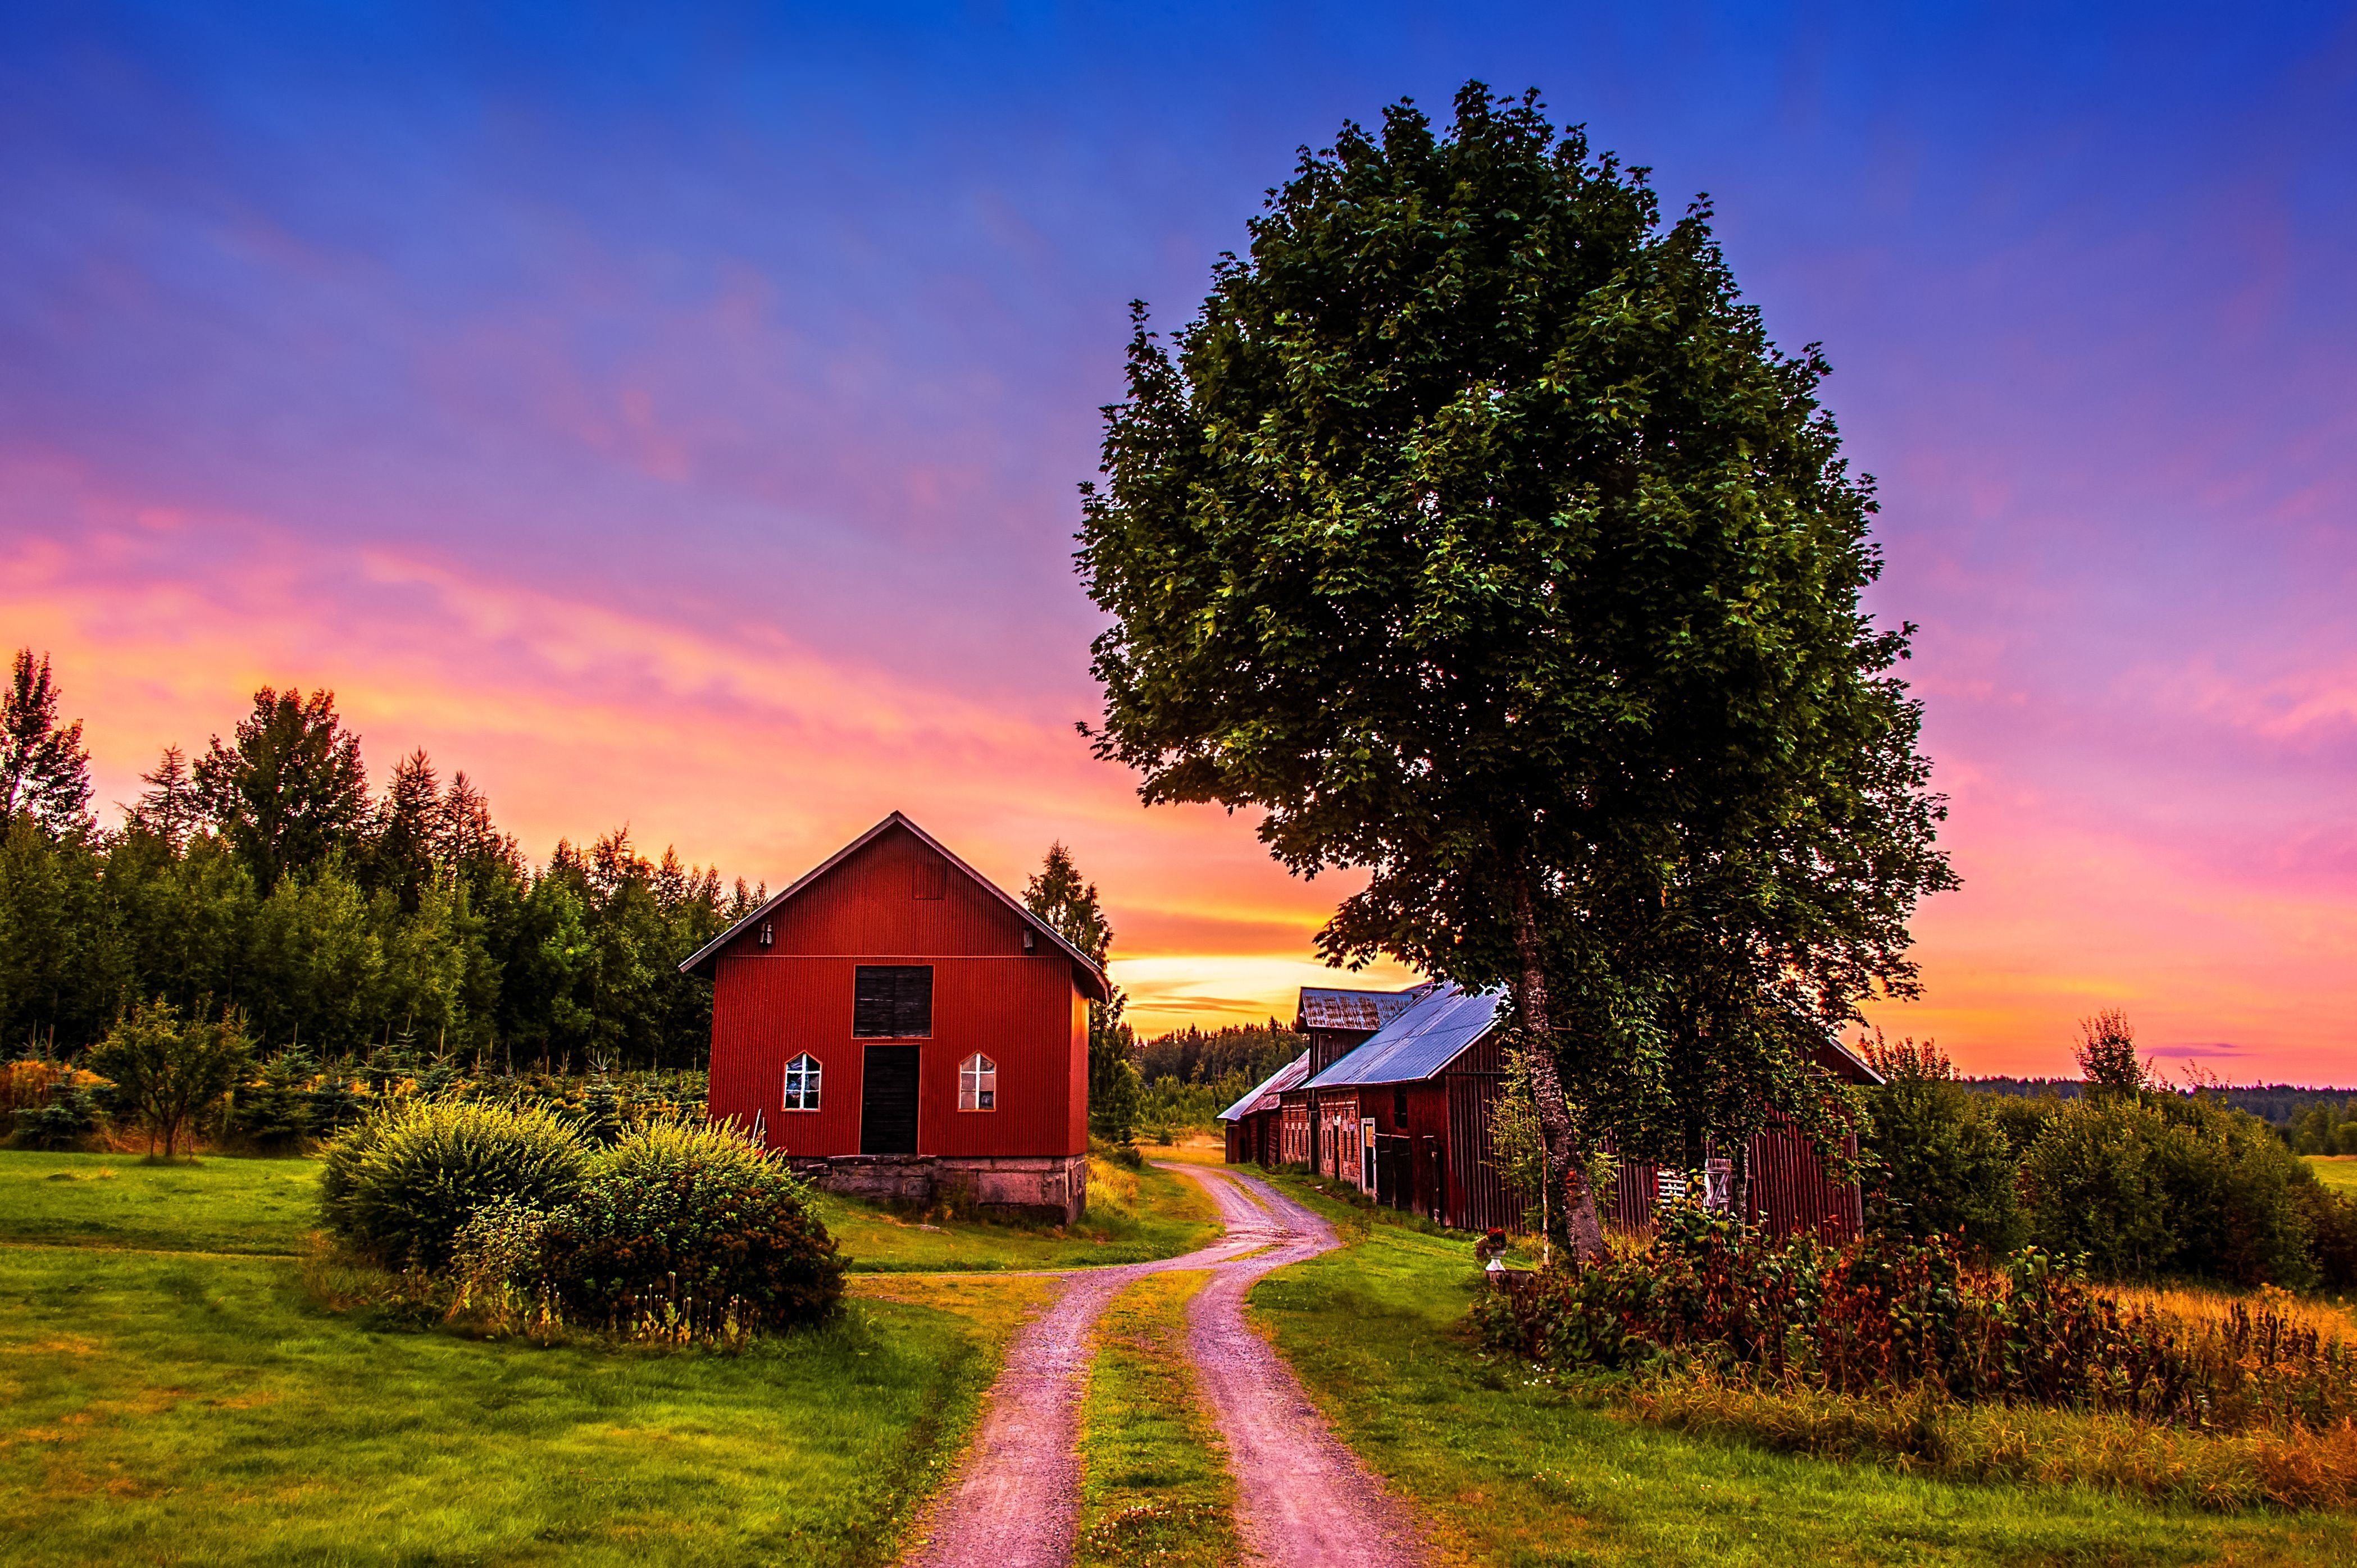 sunset trees road home landscape rustic farm house 4196x2792